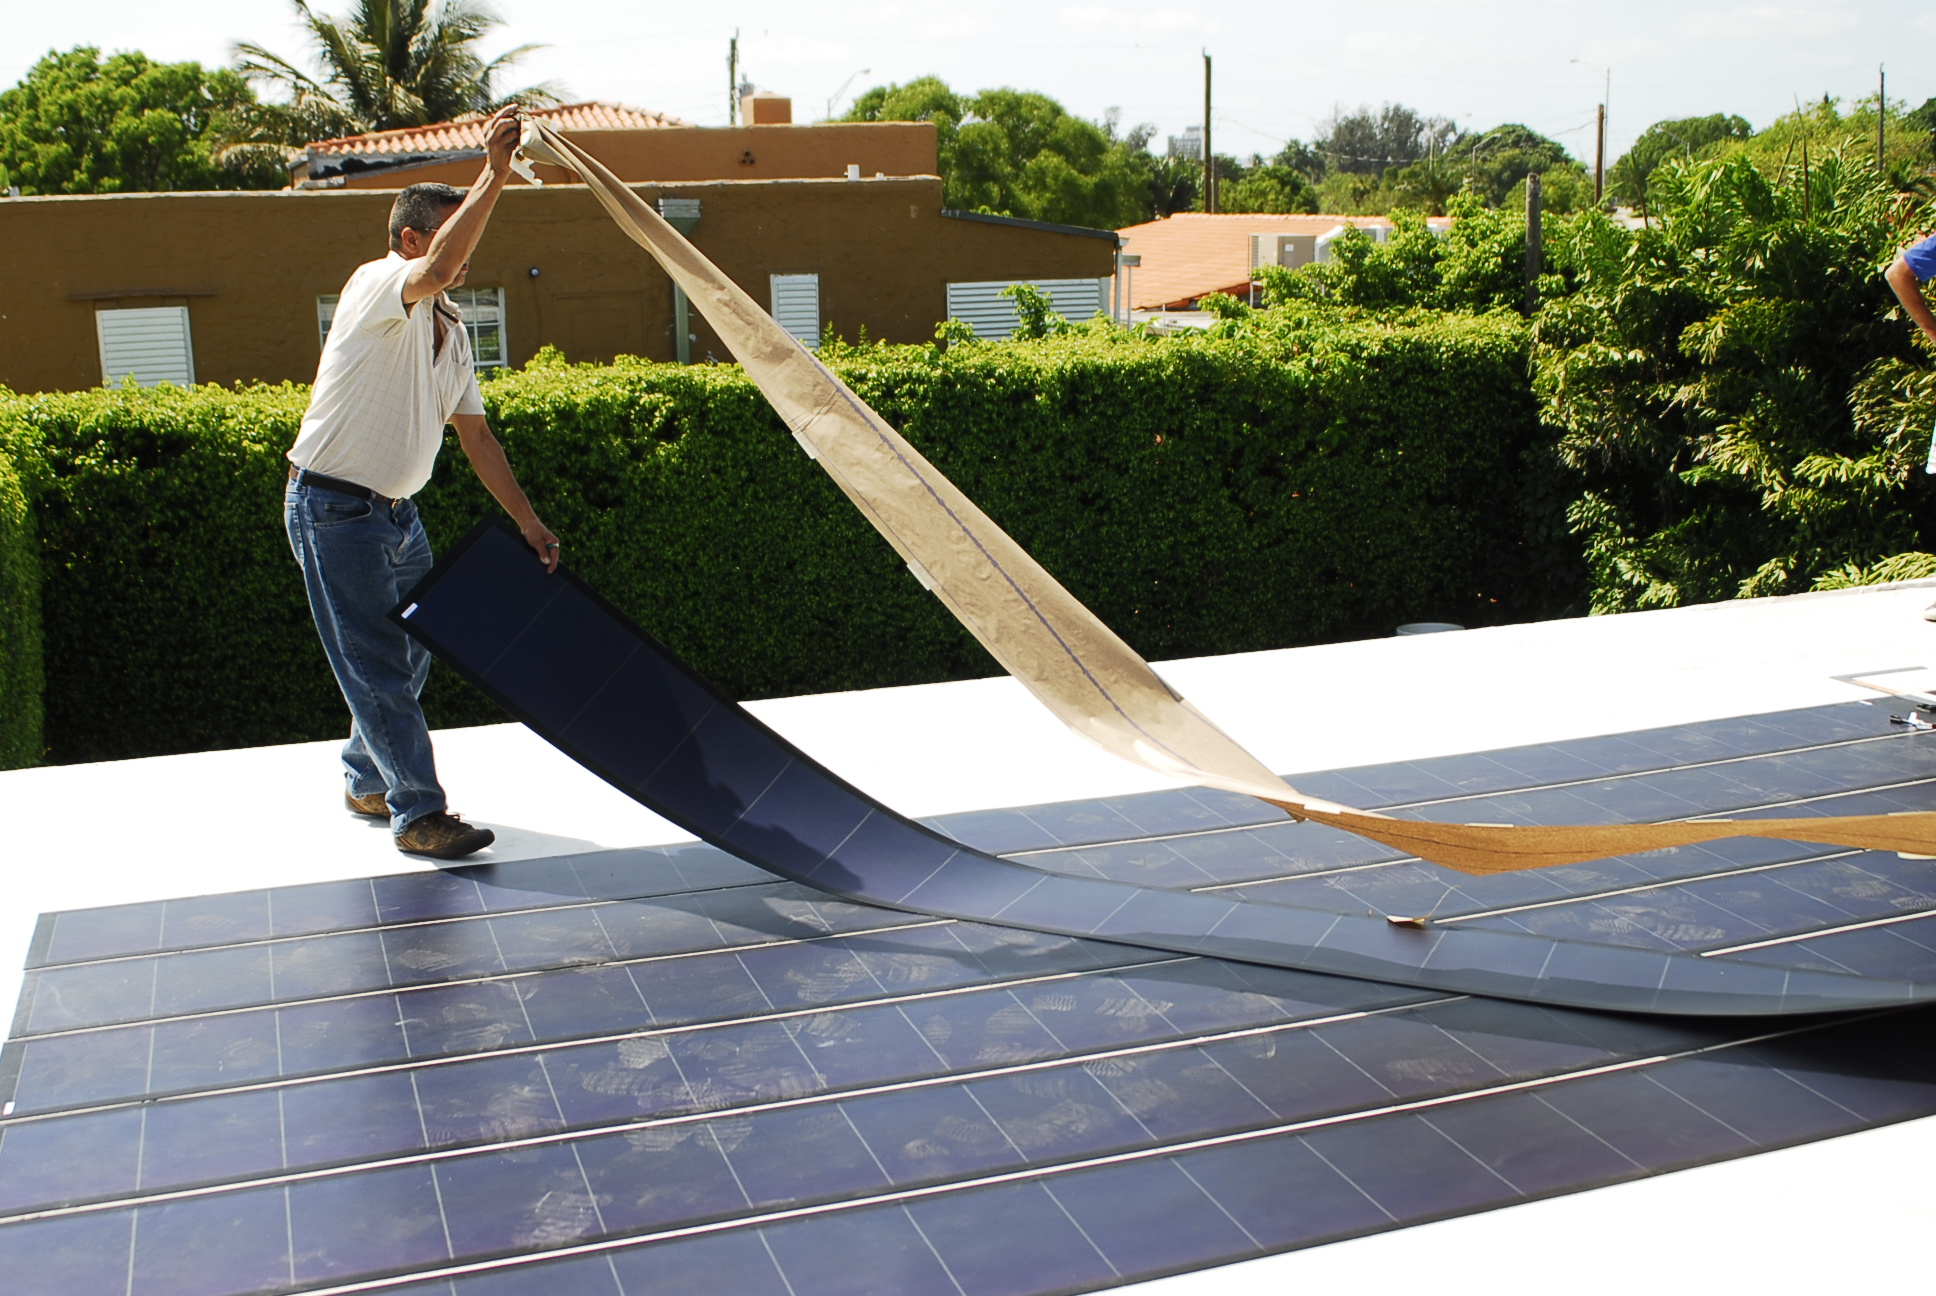 File:Thin Film Flexible Solar PV Installation 2.JPG - Wikipedia, the ...